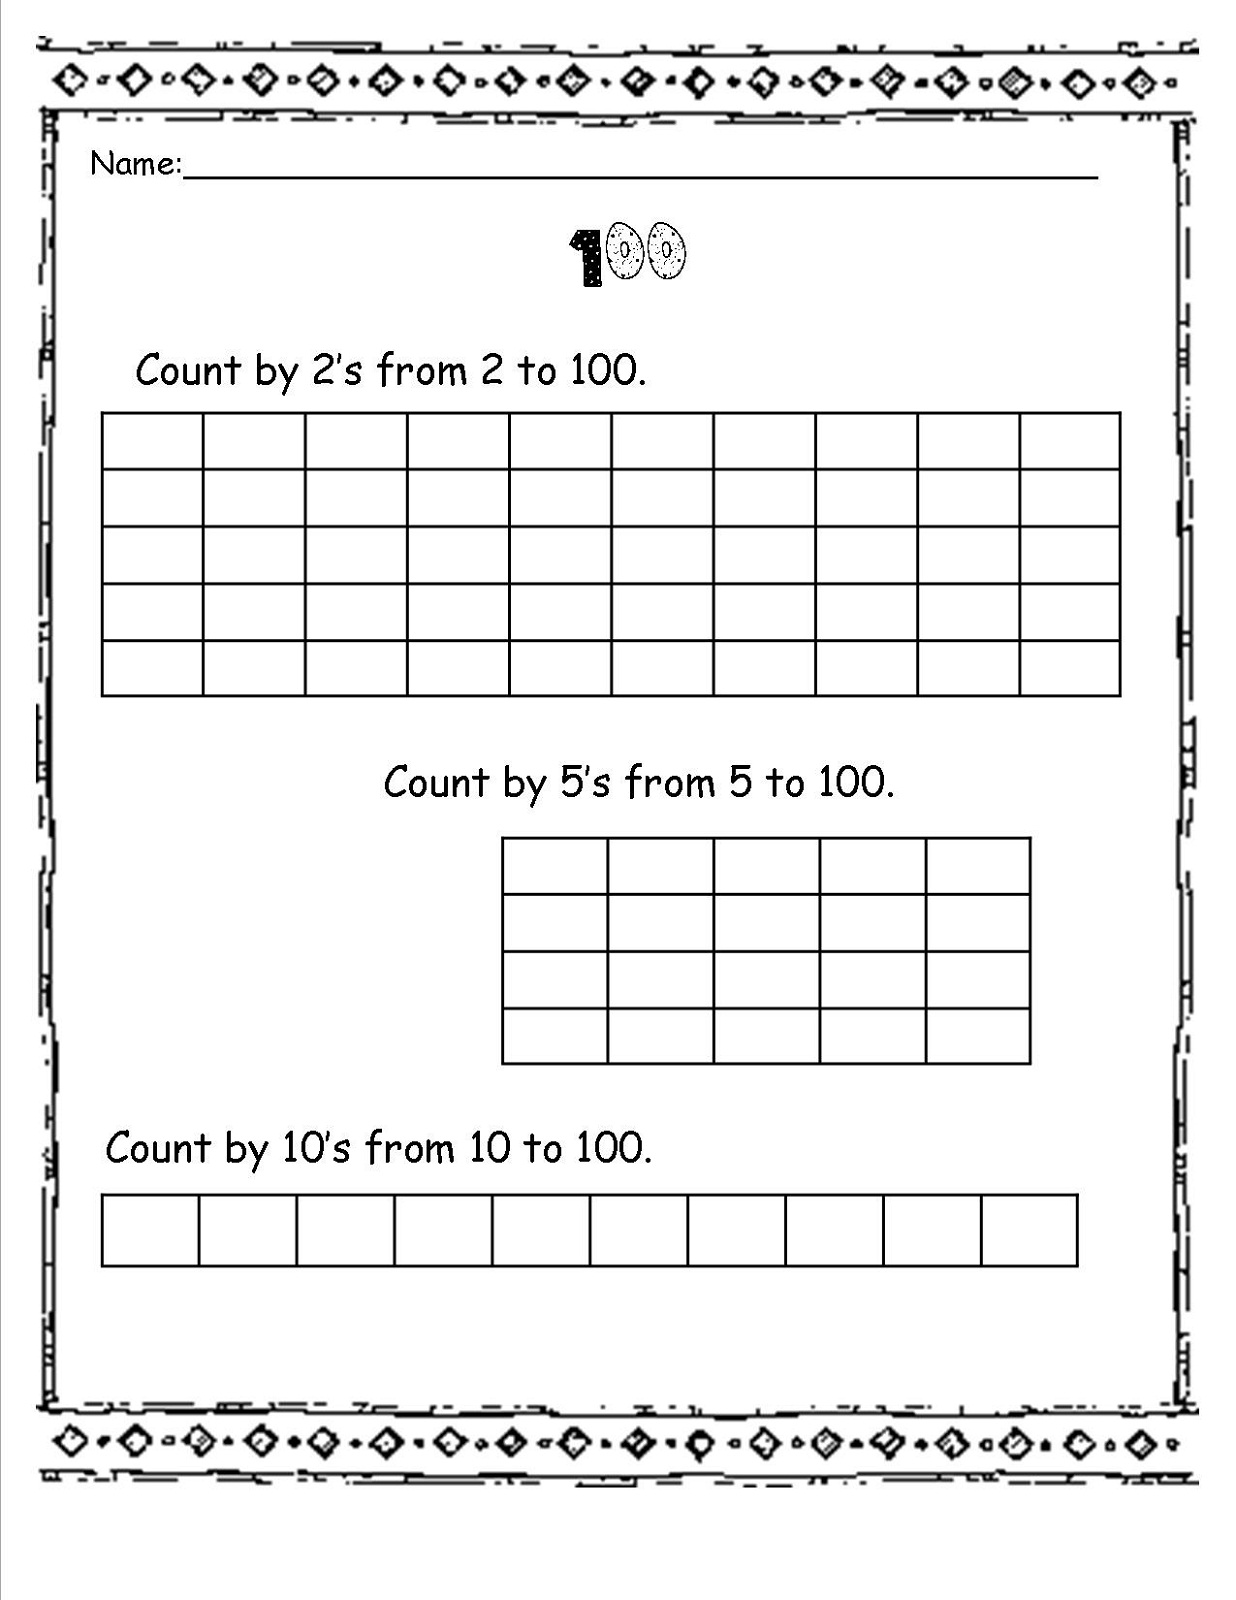 skip-count-worksheets-by-100